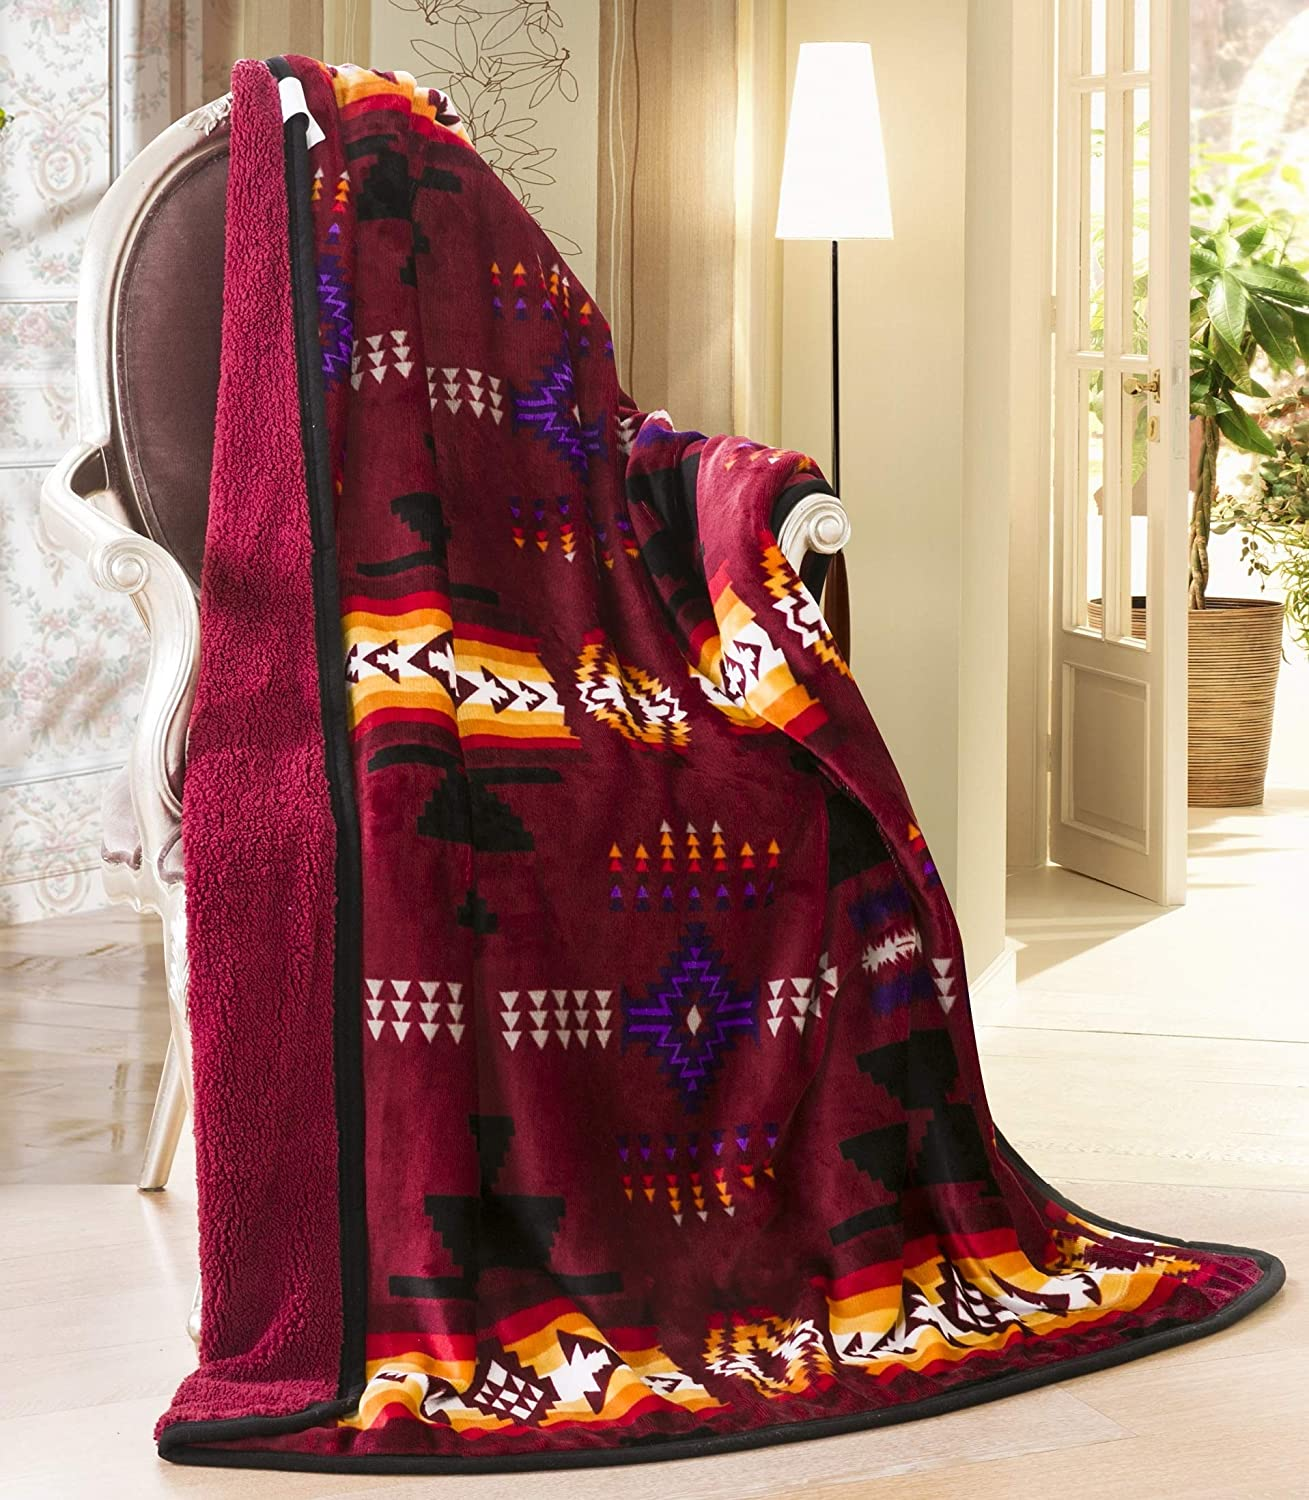 Black SVT 16112 Queen reversible burgundy//black Navajo Print Southwest Design Queen Size Reversible Burgundy